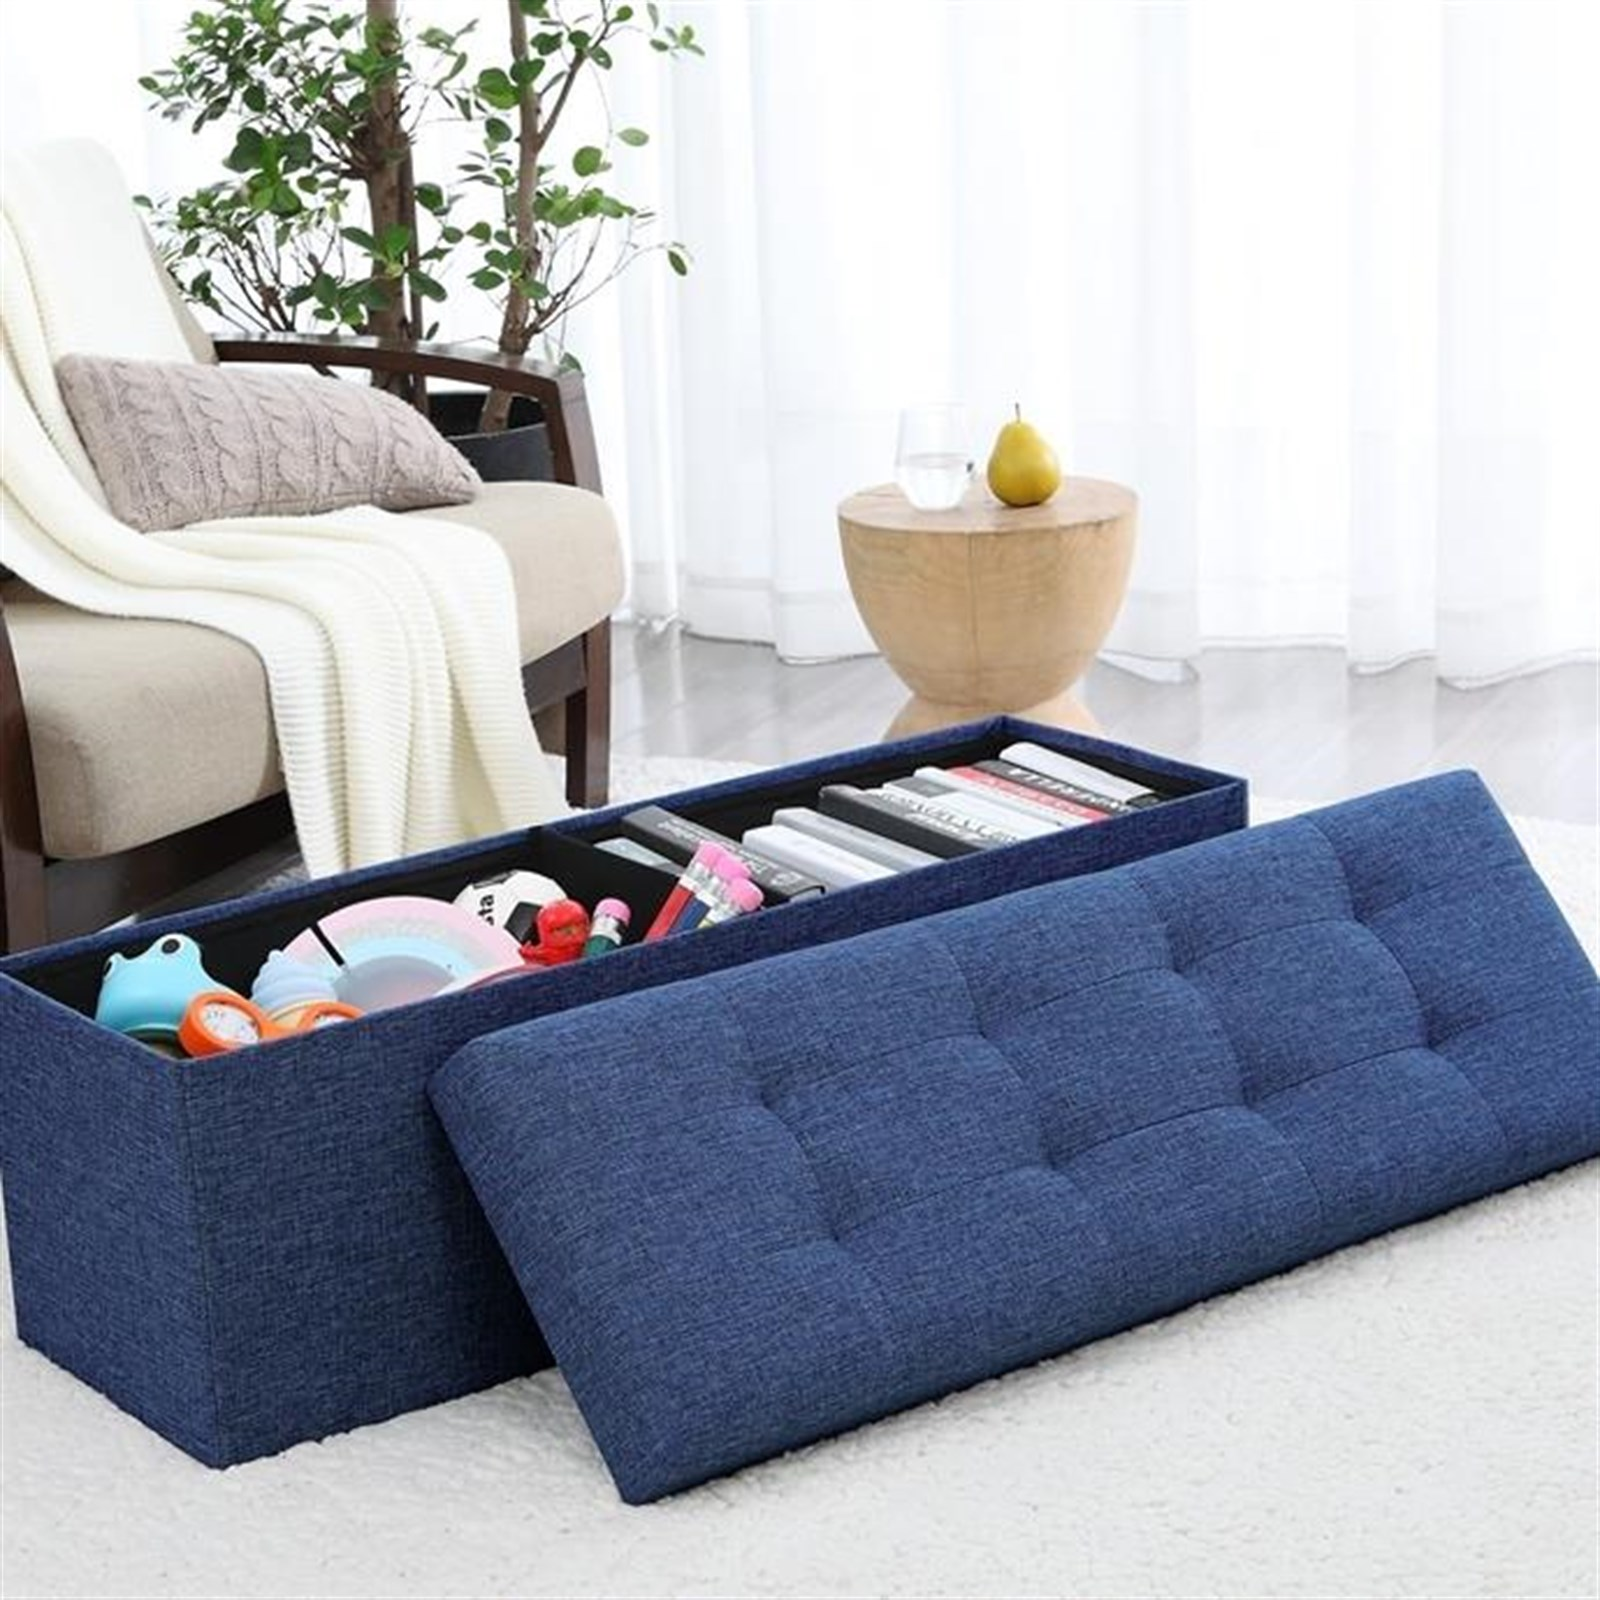 Fine Tufted Storage Ottoman Only 49 99 Shipped Reg 129 99 Gmtry Best Dining Table And Chair Ideas Images Gmtryco